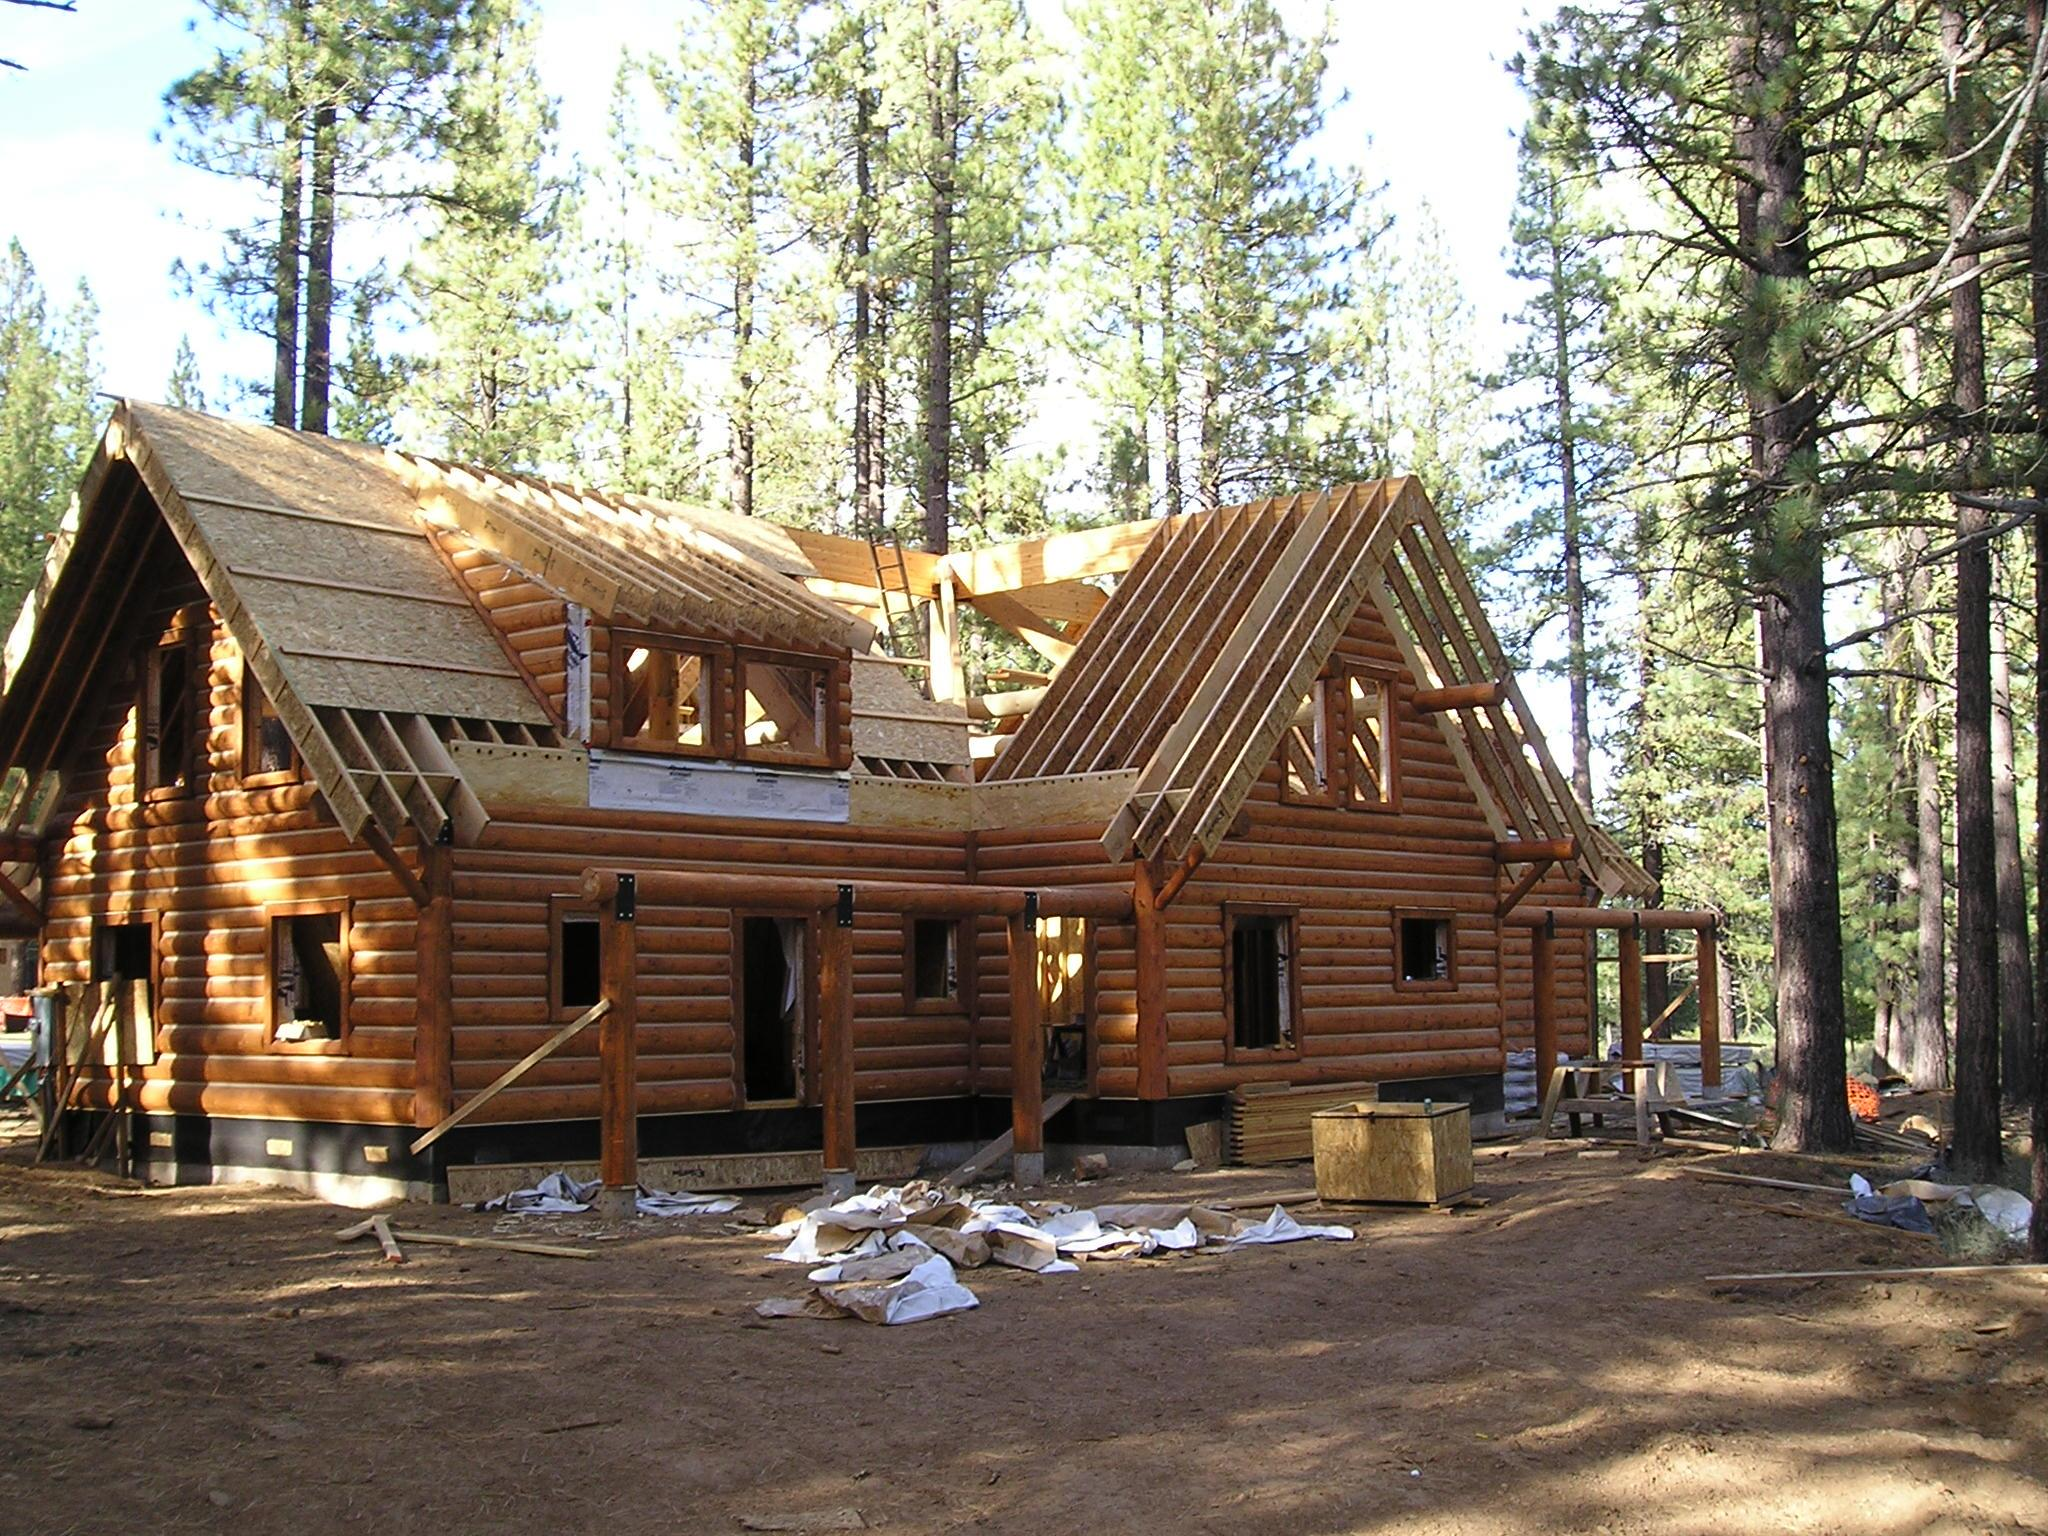 Building A Log Home From Start To Finish With Our System